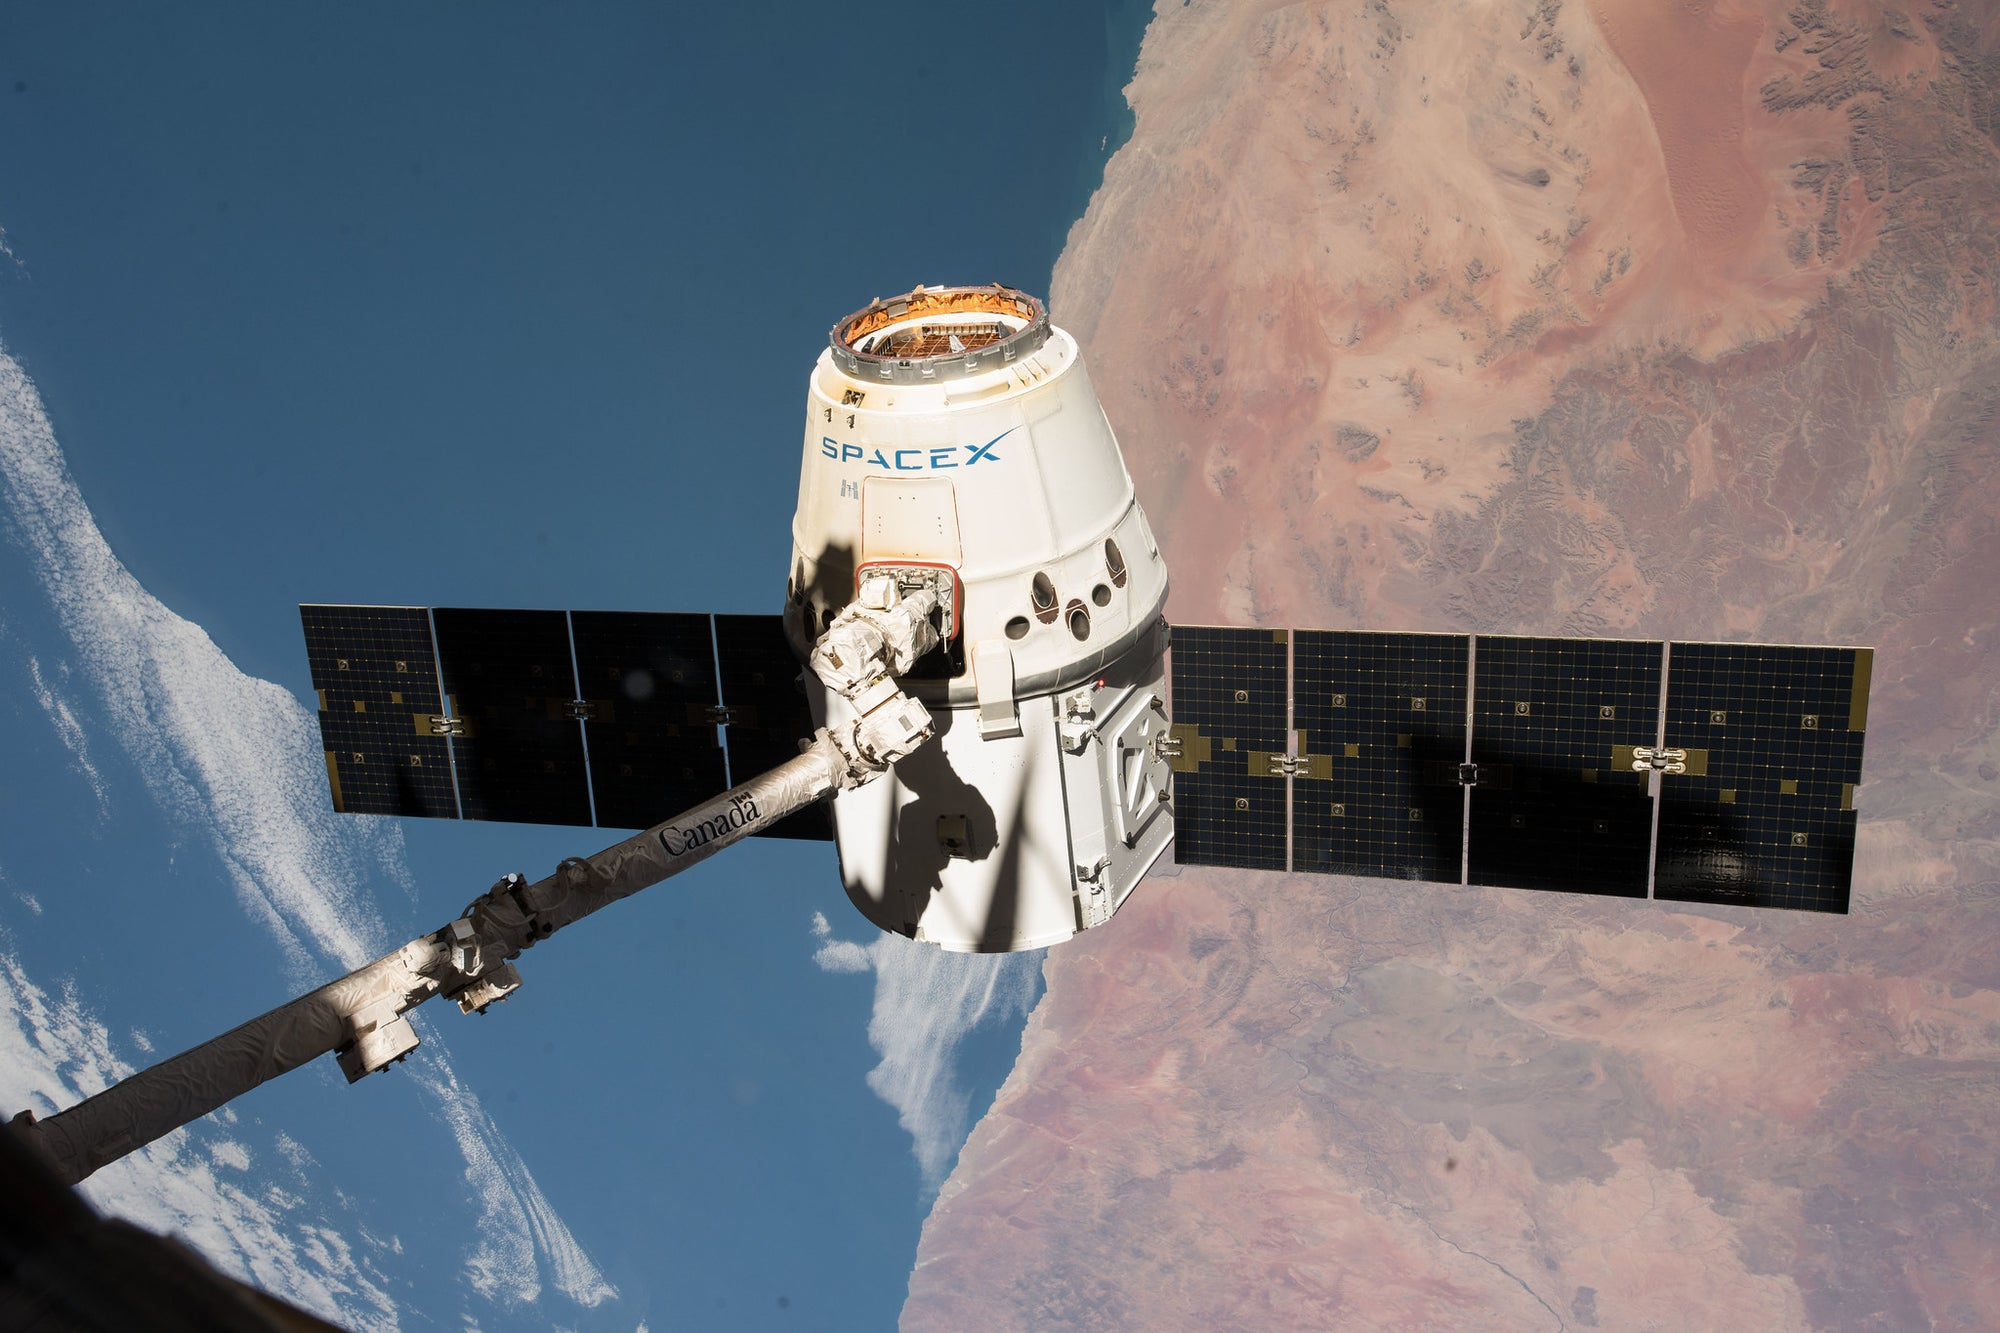 SpaceX Dragon arrived to the International Space Station this morning with over 5,700 pounds of cargo!